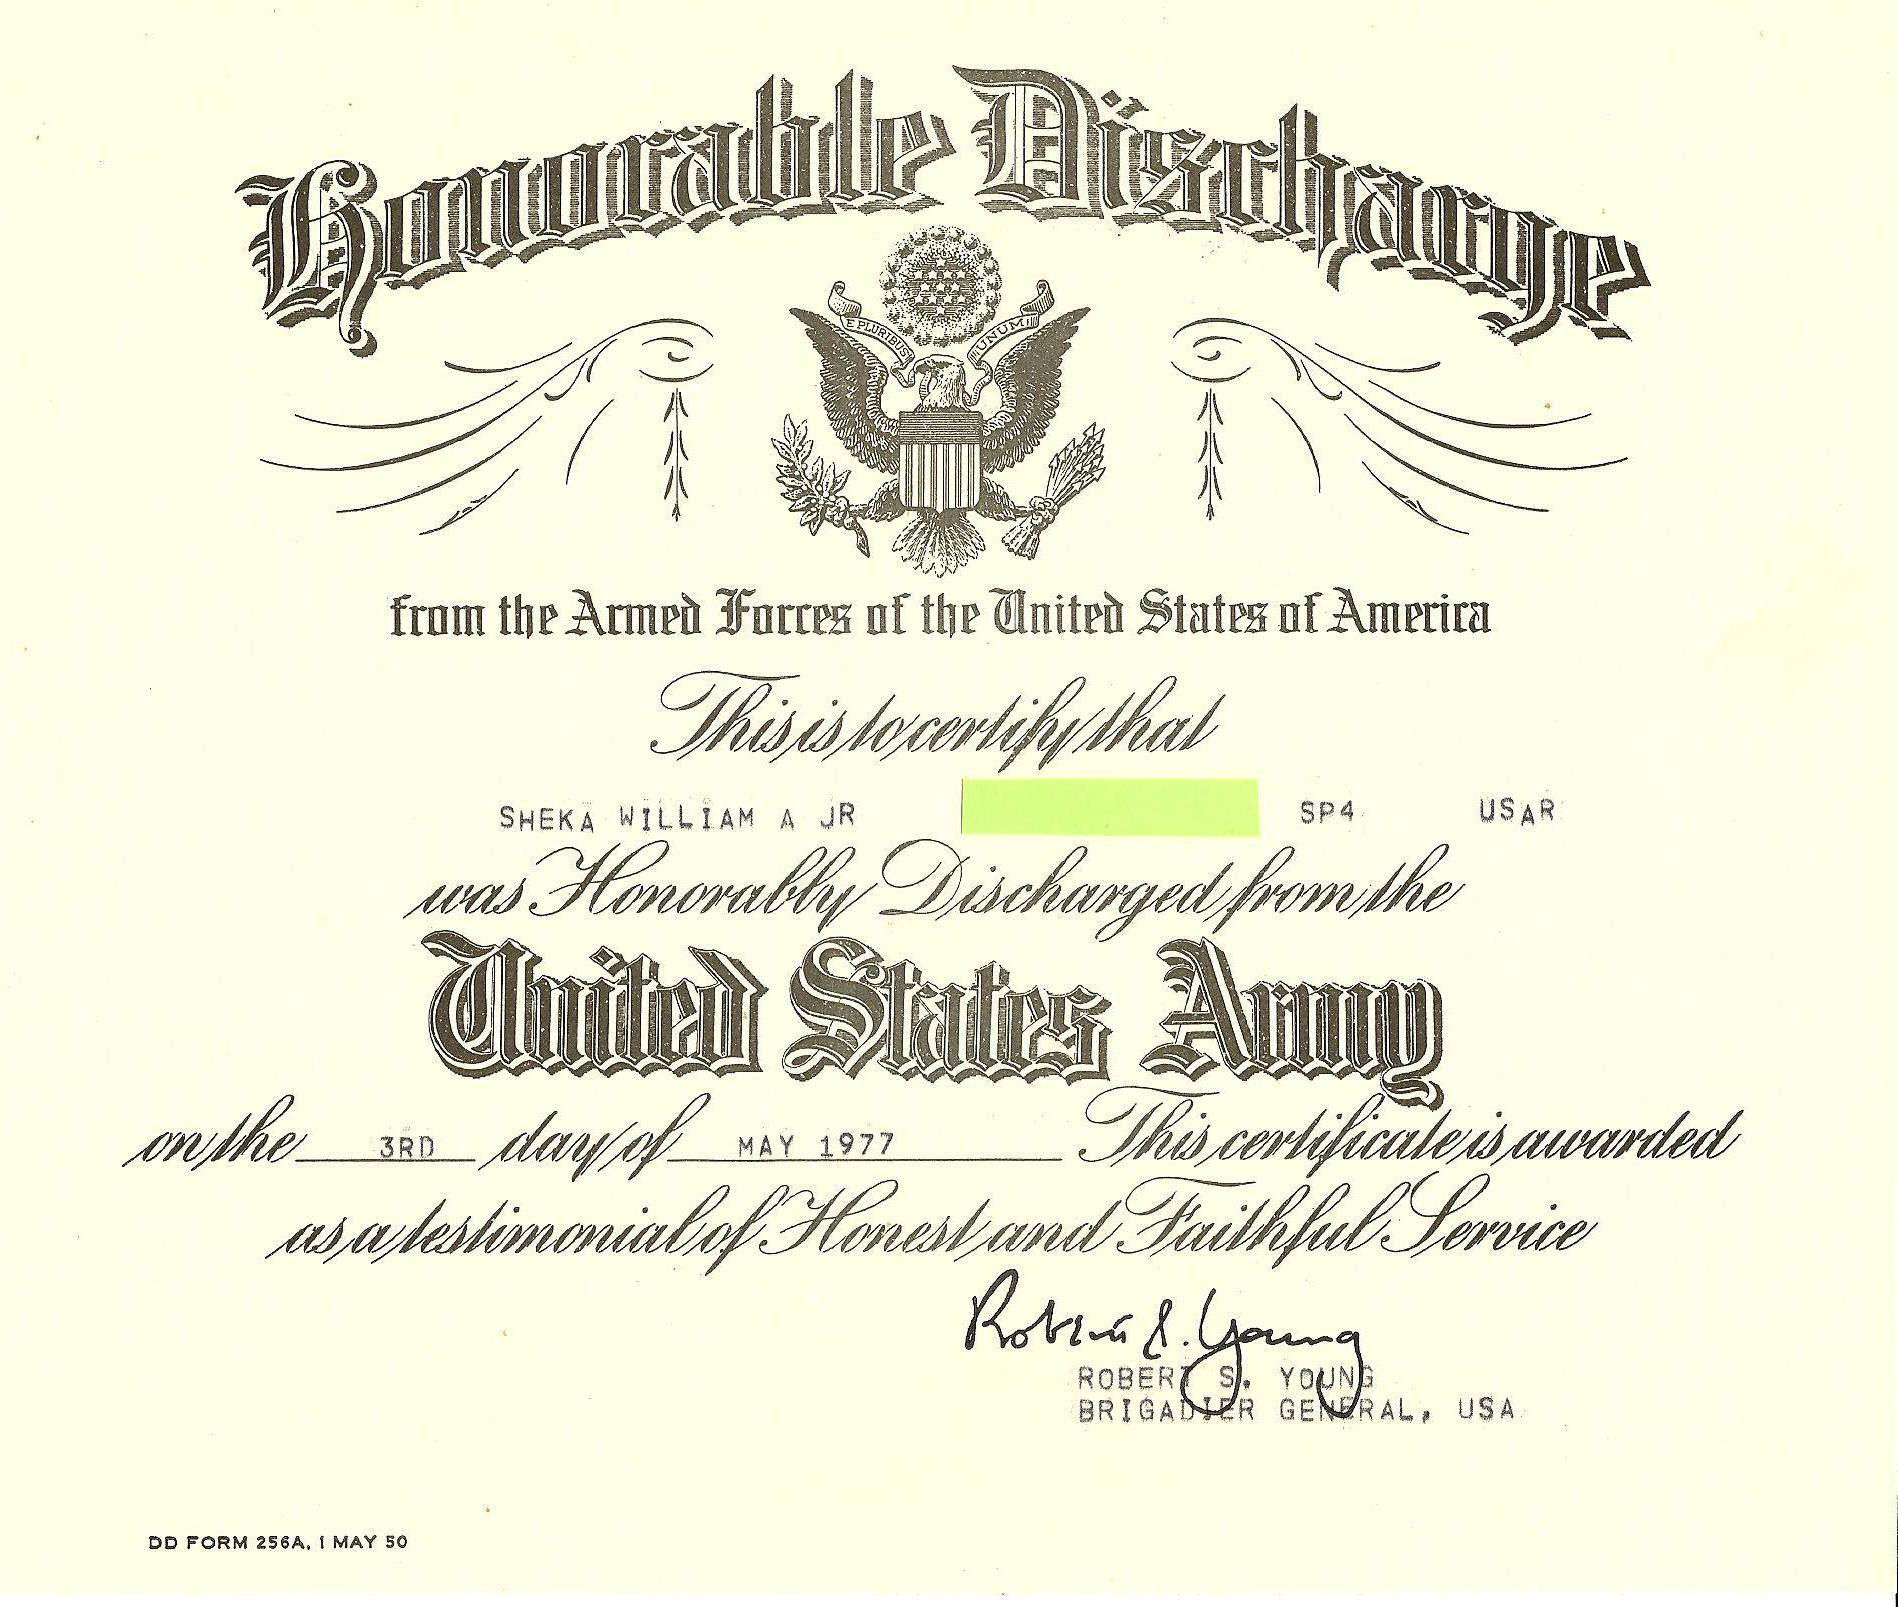 bill-jrs-army-honarable-discharge